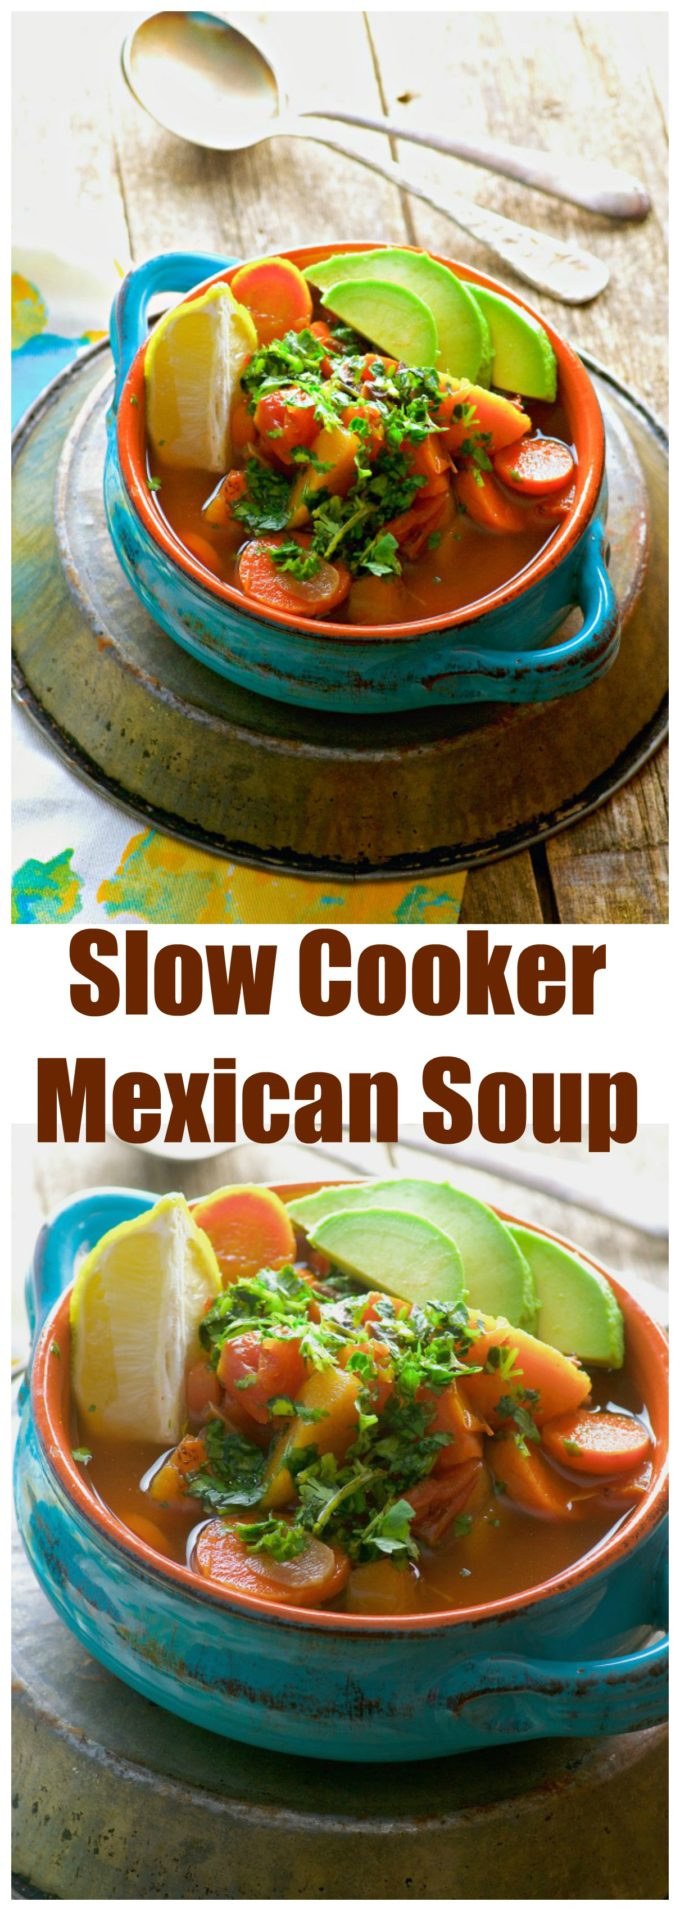 Set up this Slow Cooker Light Mexican Detox Soup before you leave in the morning, and come home to a delicious, comforting meal, perfect for a cold winter night.